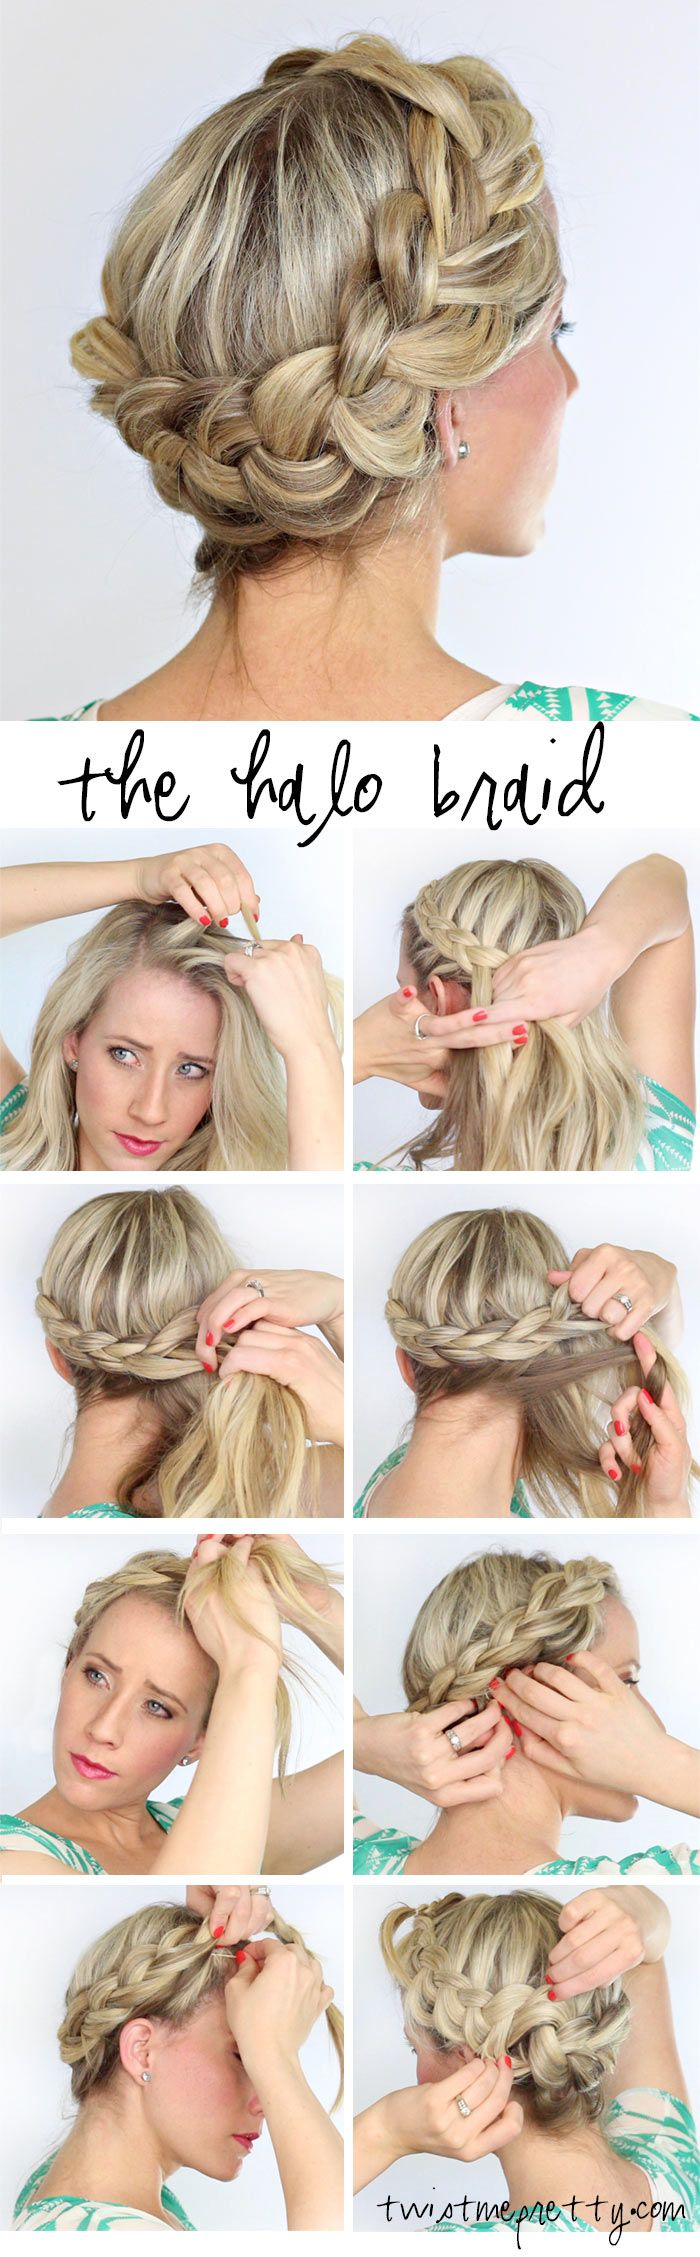 Bring The Spring Early With These Romantic Hair Braids